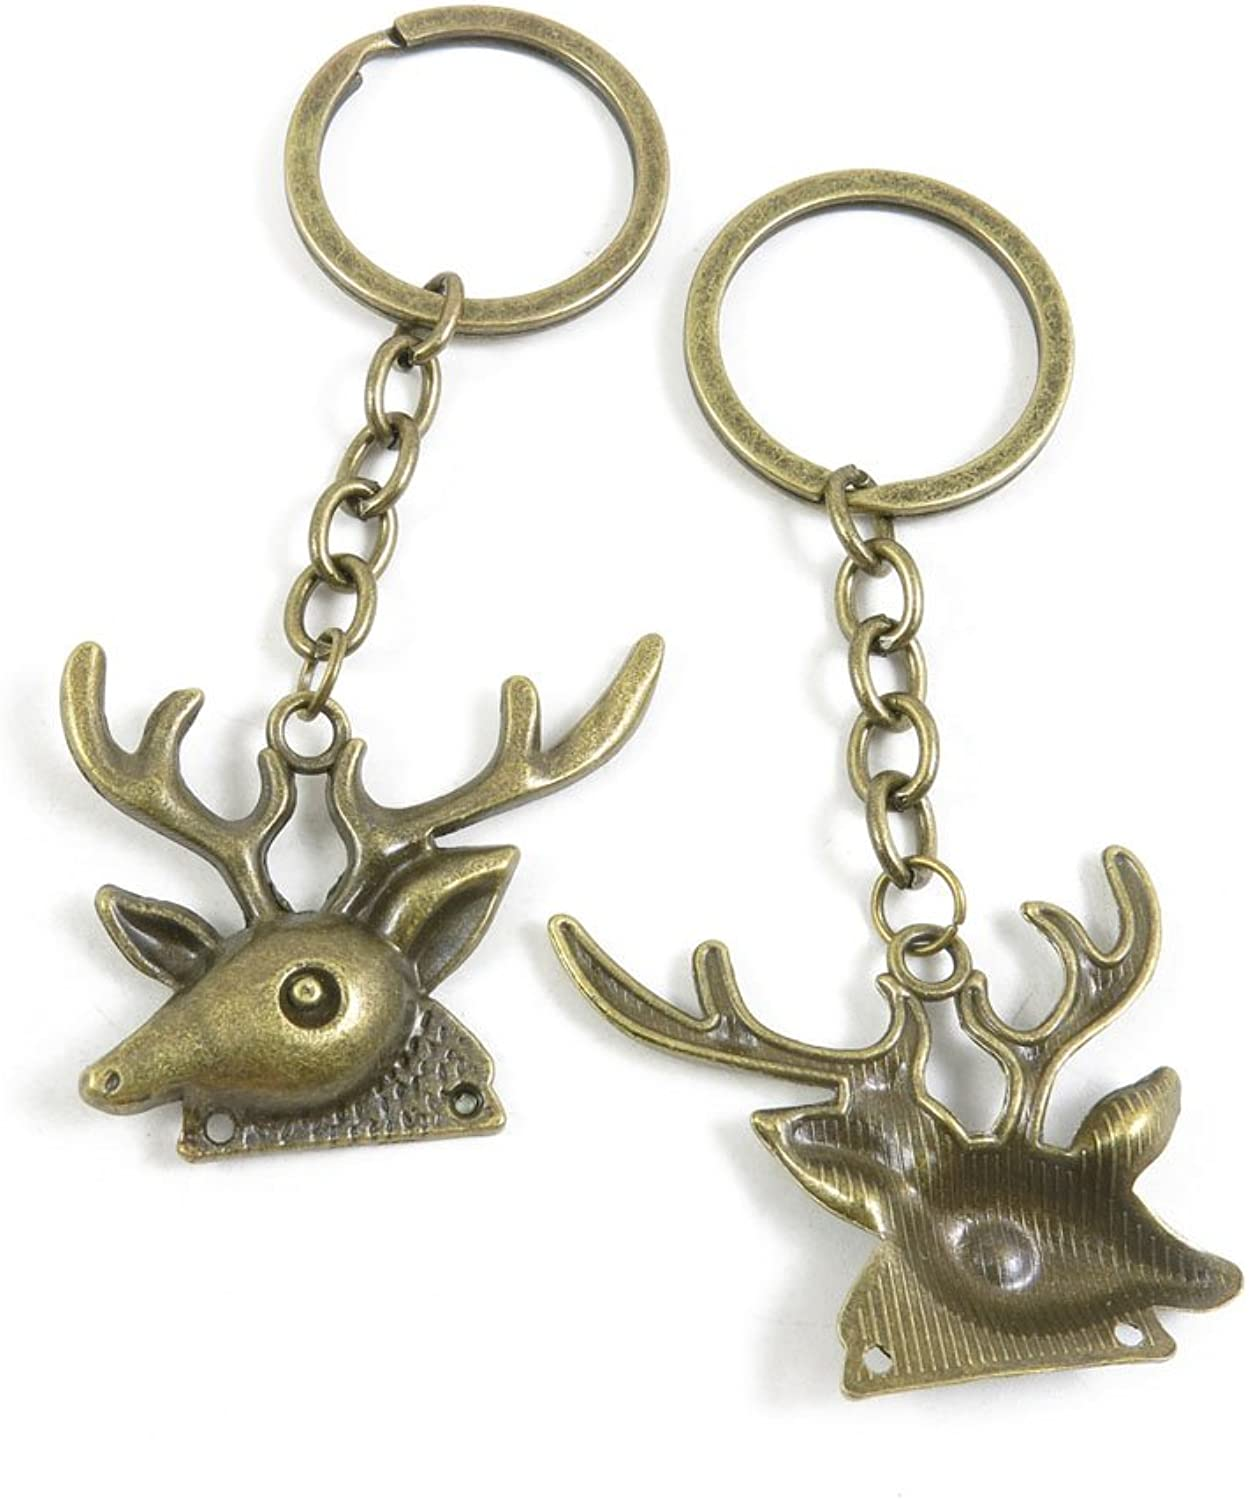 110 Pieces Fashion Jewelry Keyring Keychain Door Car Key Tag Ring Chain Supplier Supply Wholesale Bulk Lots H3CC8 Deer Buck